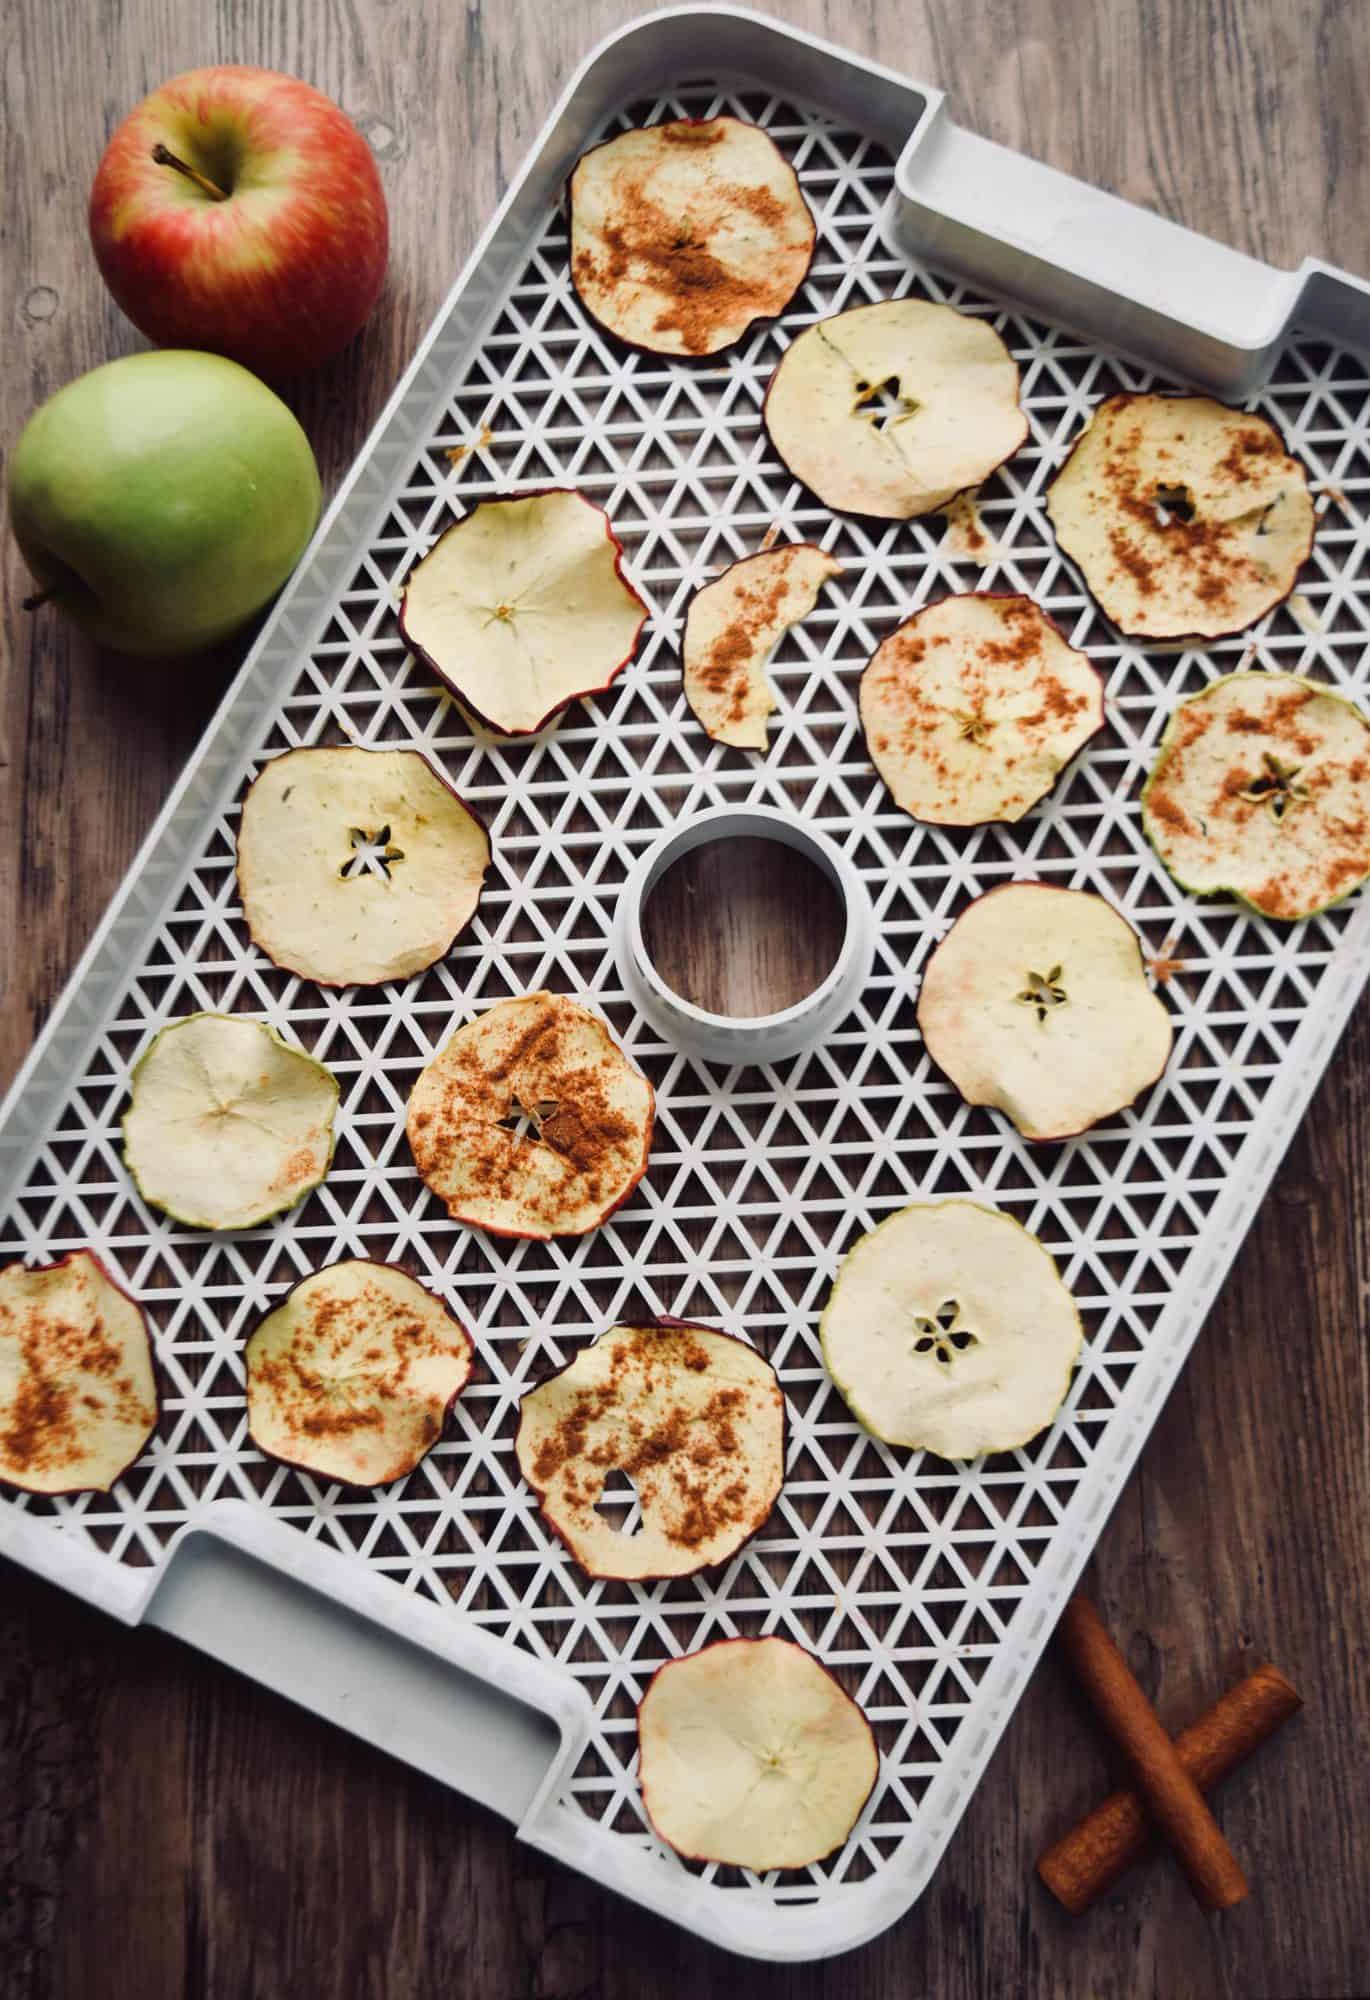 a dehydrator tray with apple chips on it. Some of them have cinnamon sugar on top and some are plain. 2 apples are next to the tray.